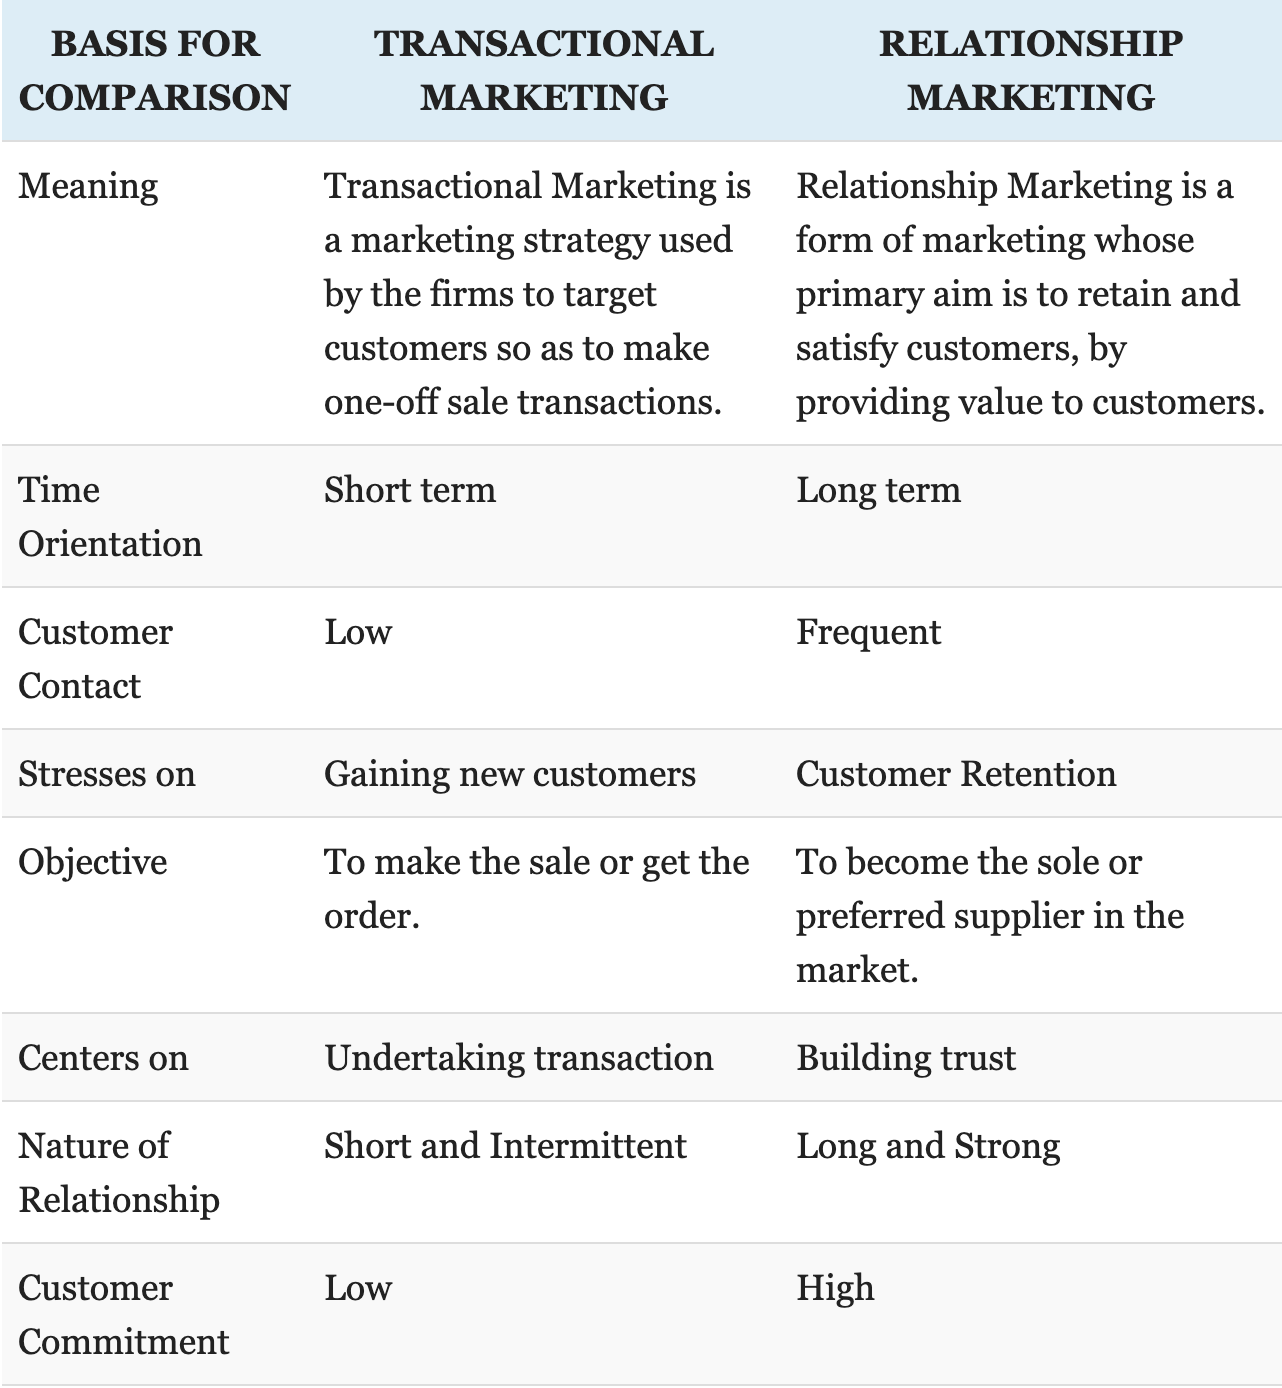 Chart explaining the differences between transactional and relationship marketing.